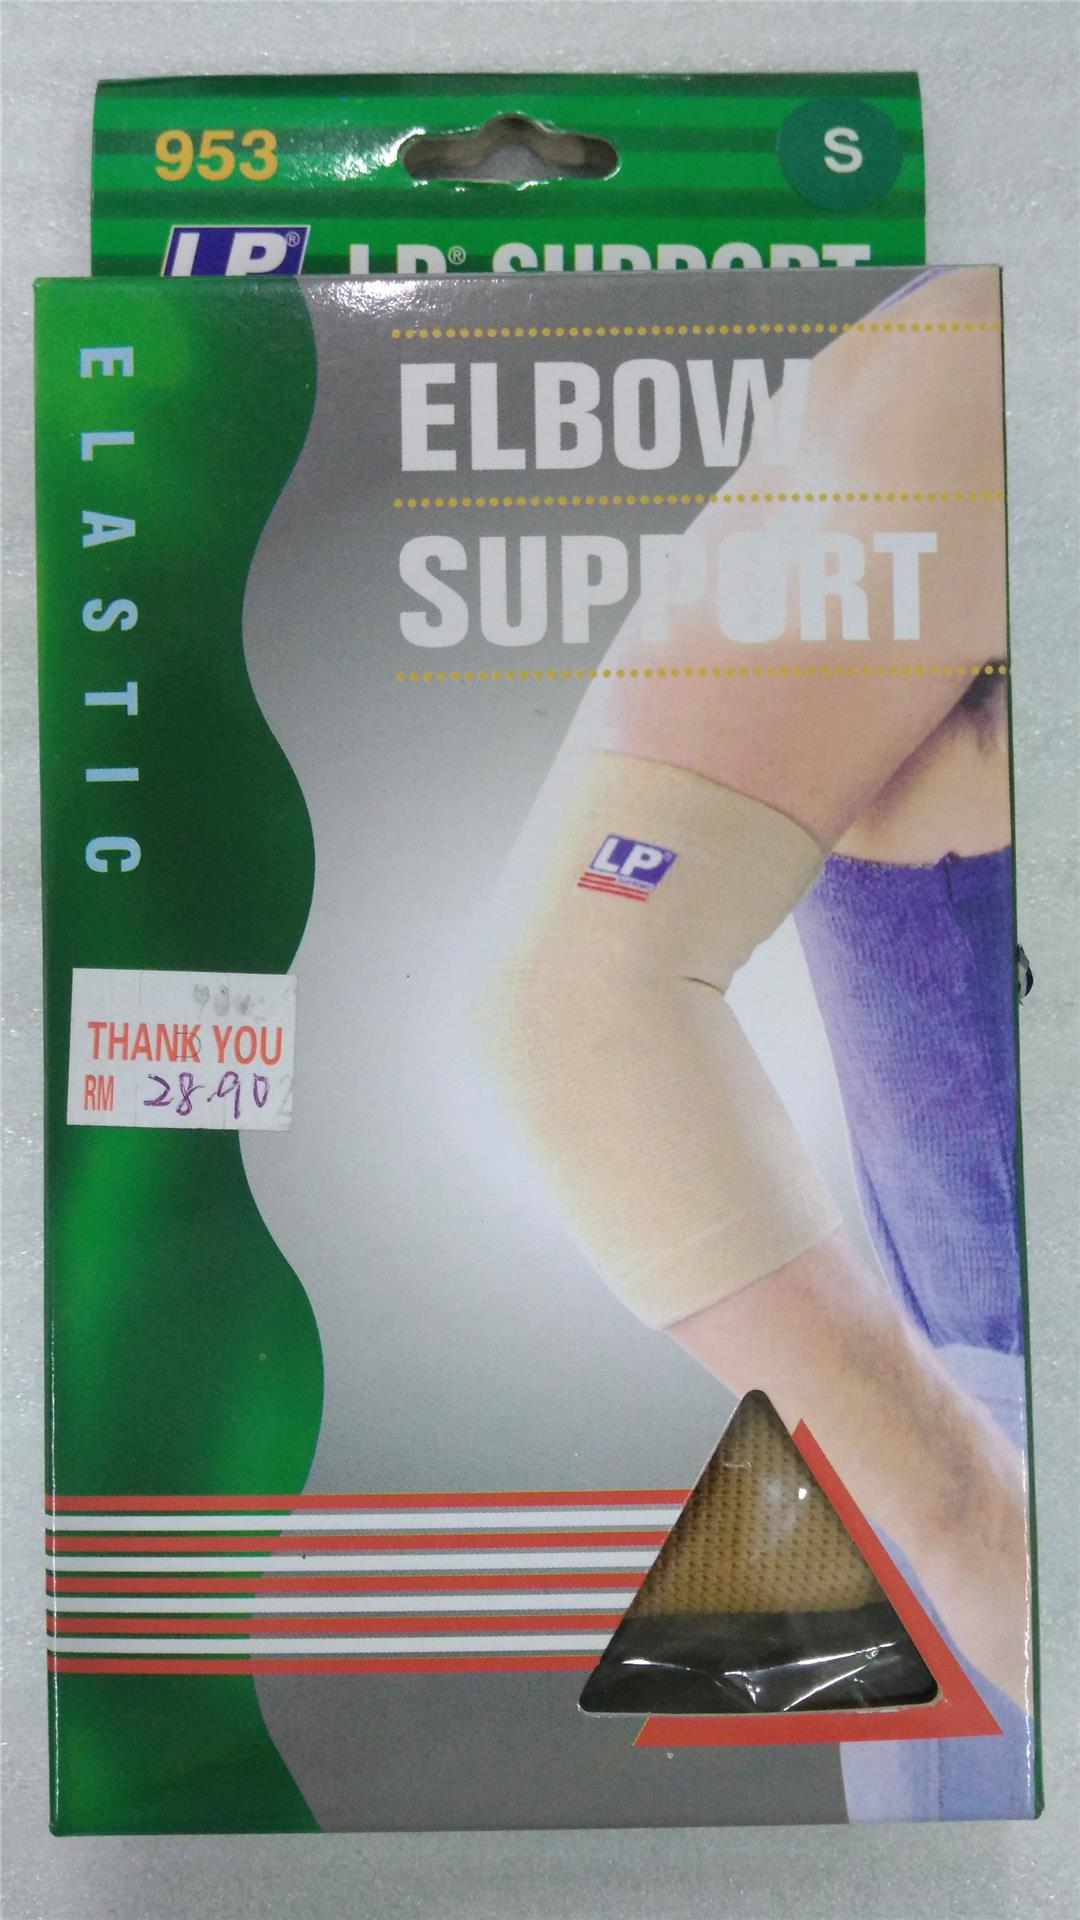 LP Support Elbow Support 953 Size-XL Limited Clearance